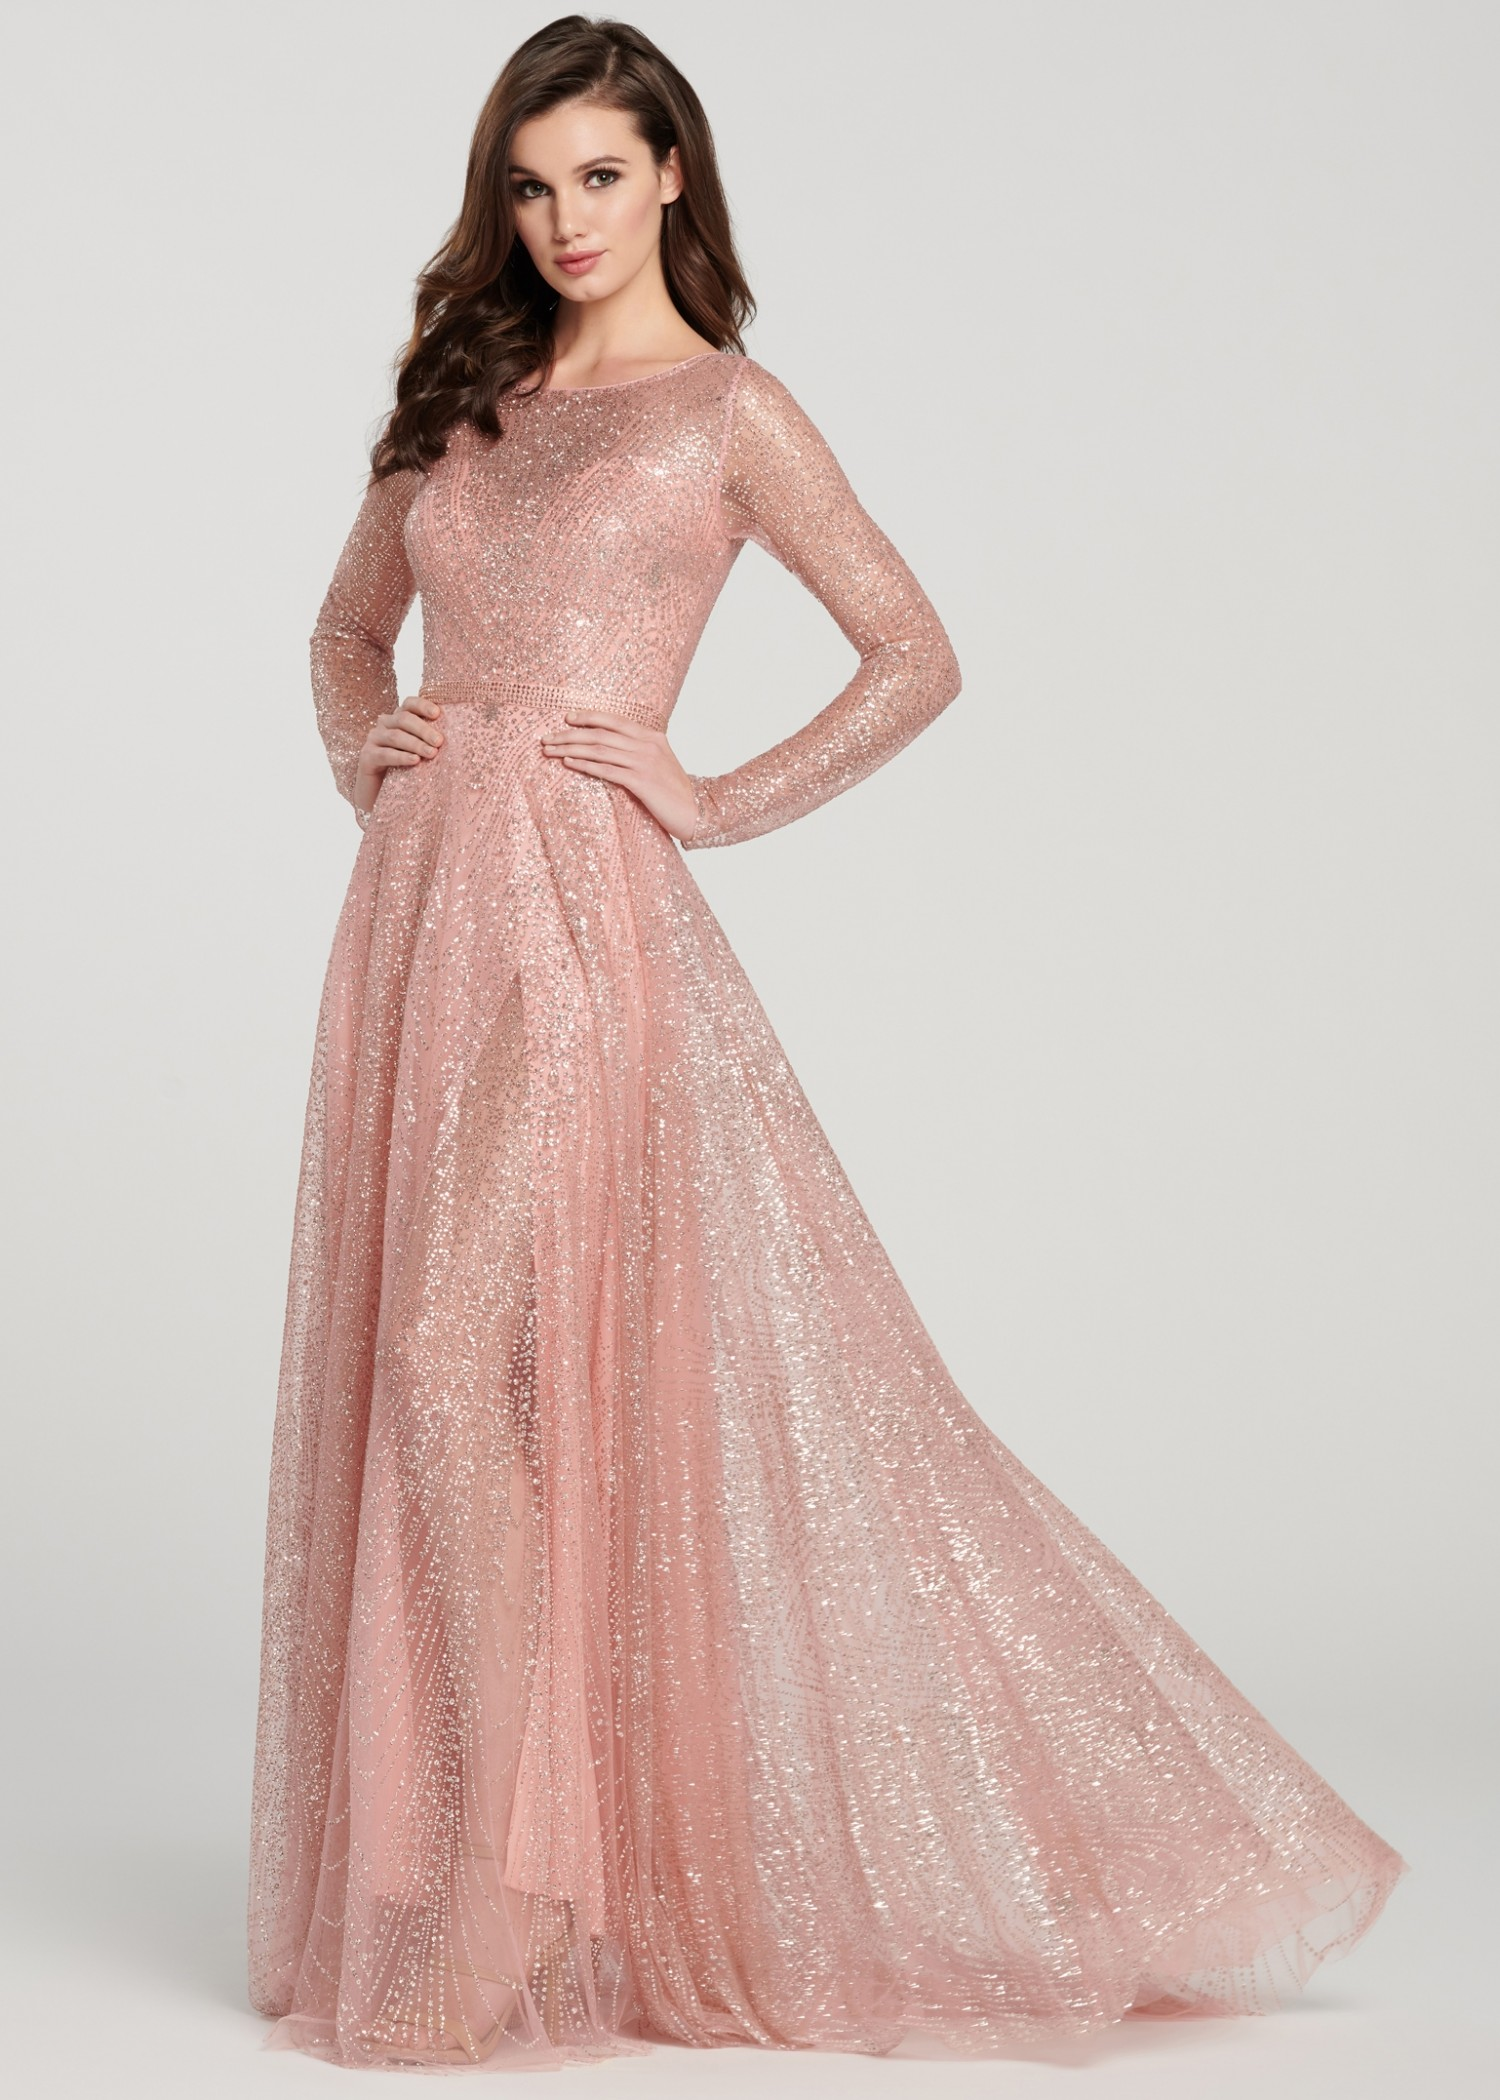 Ellie Wilde EW119003 Sparkling Long Sleeve Gown